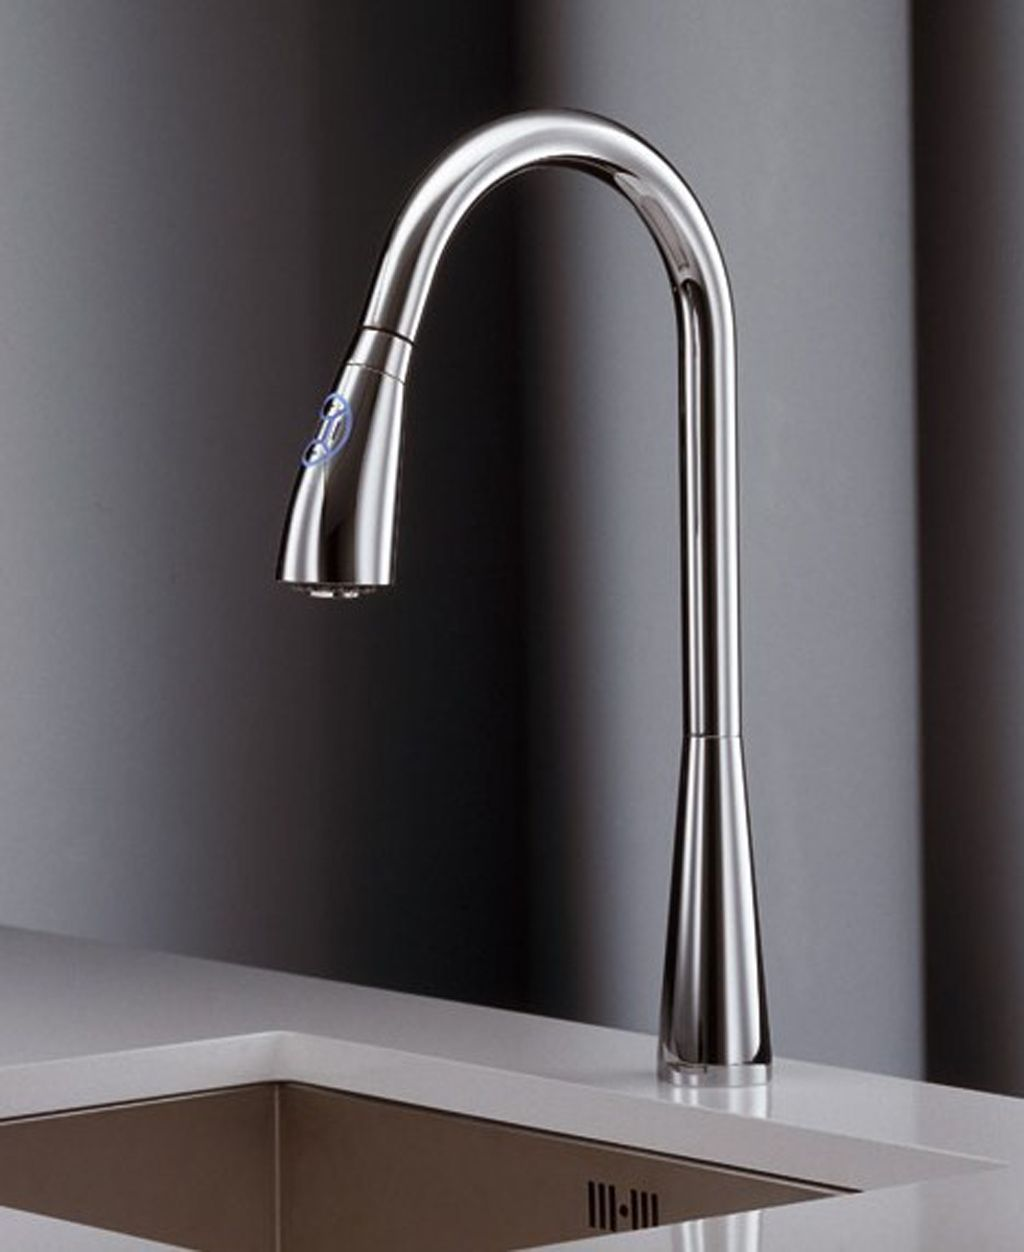 the modern kitchen faucets is minimalist and pure design with  - the modern kitchen faucets is minimalist and pure design with sometimesdaring combinations